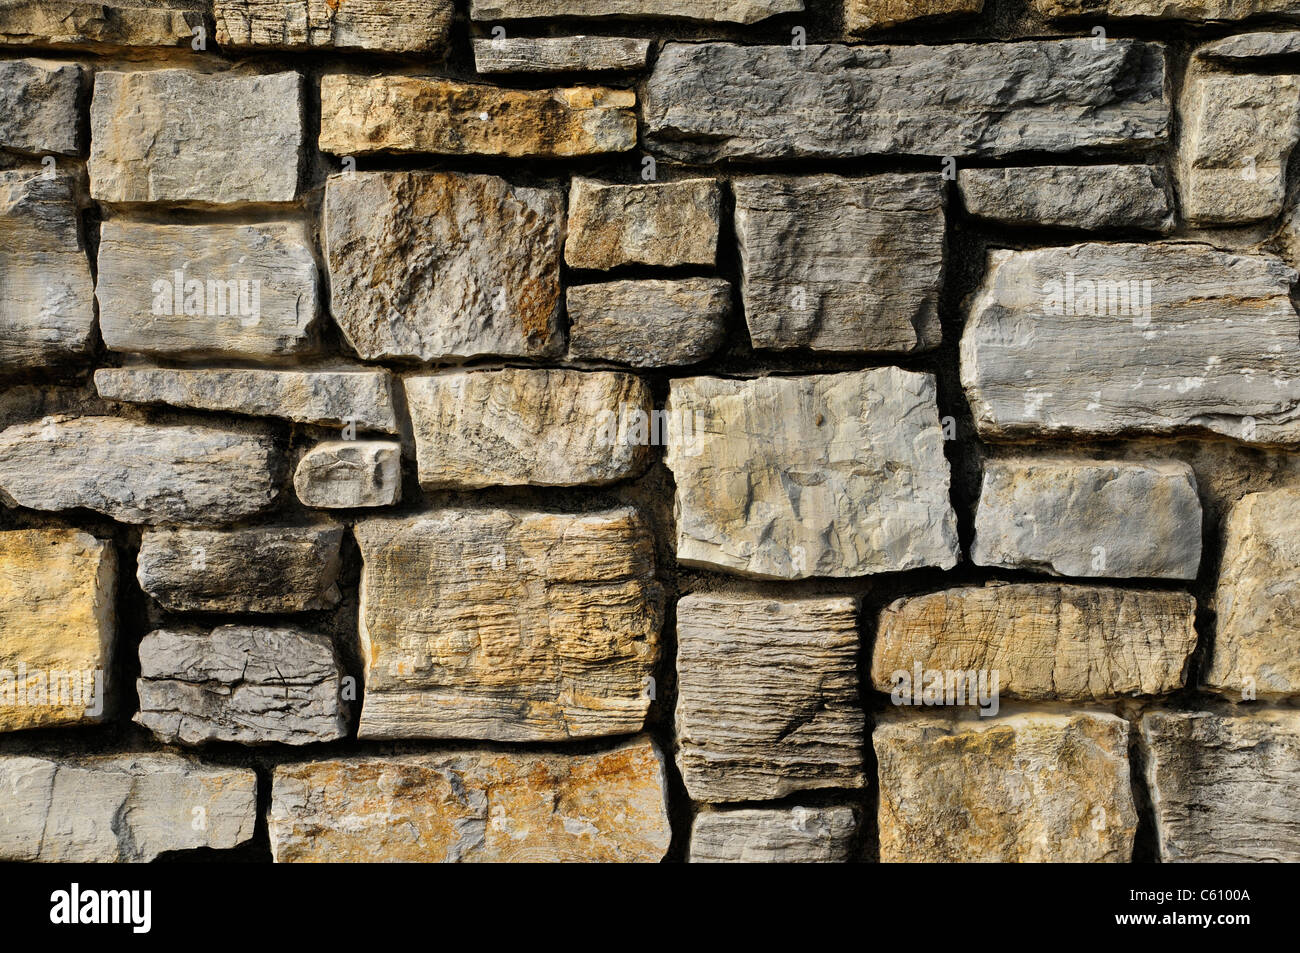 Rough masonry rock wall texture - Stock Image